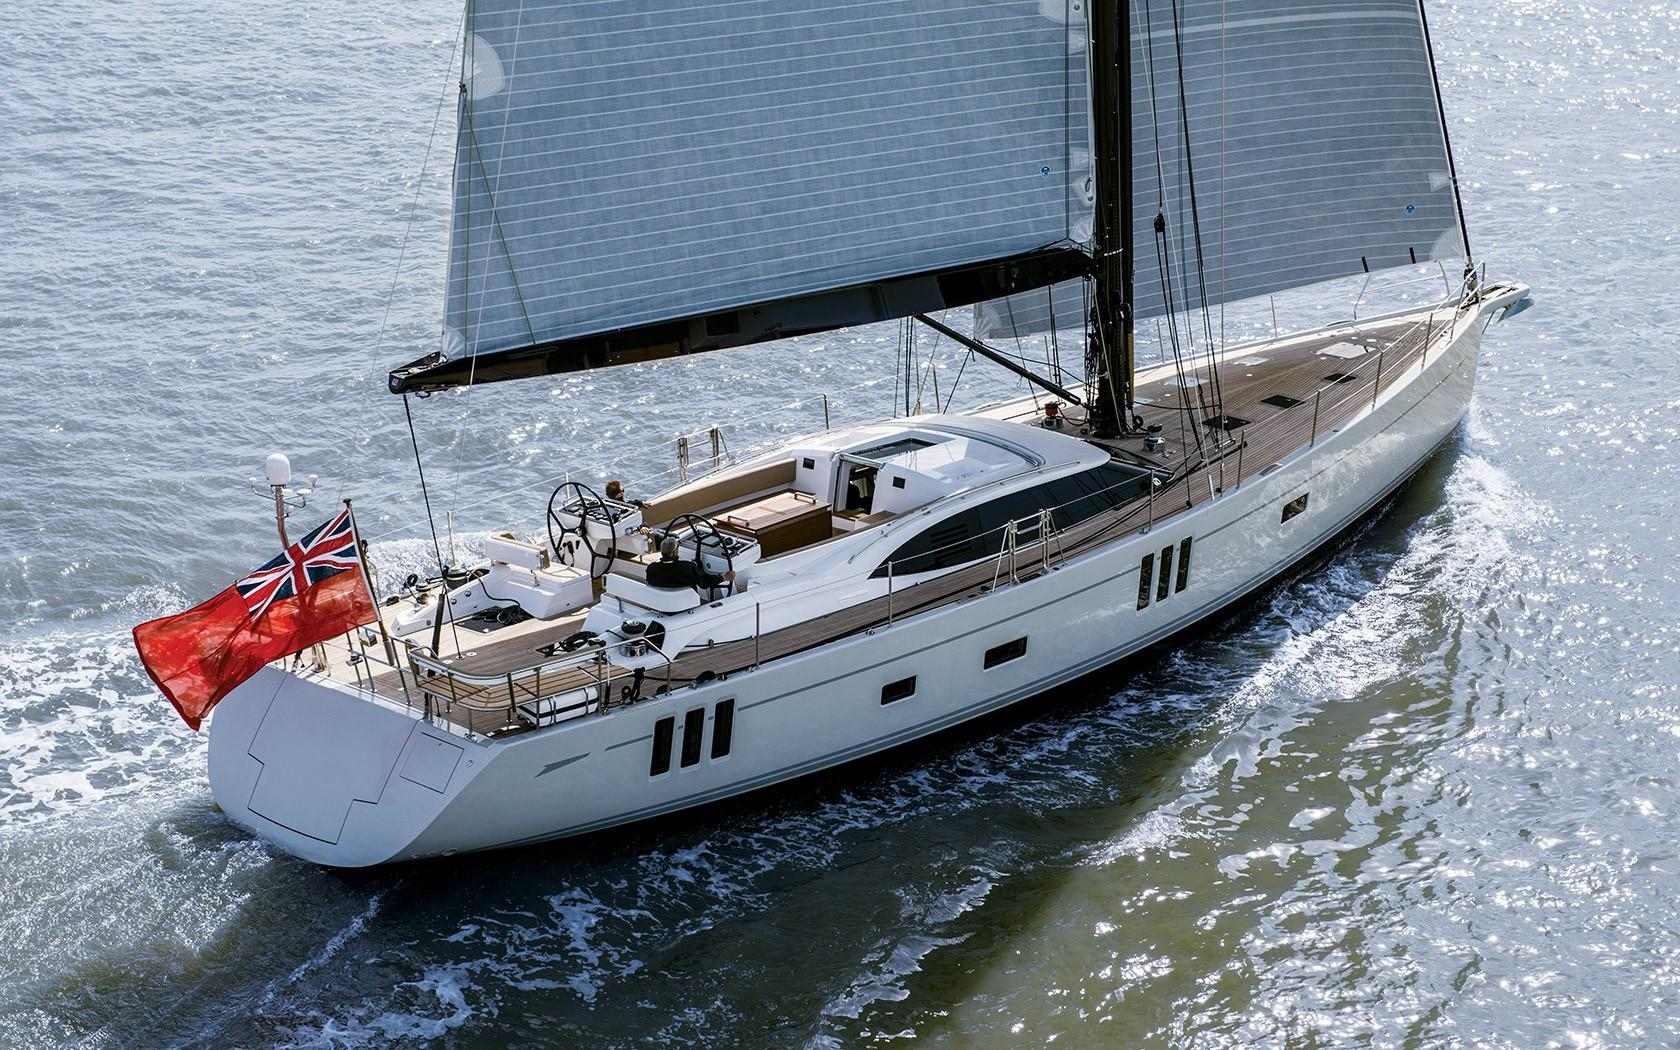 2019 Oyster 745 Sail Boat For Sale - www.yachtworld.com